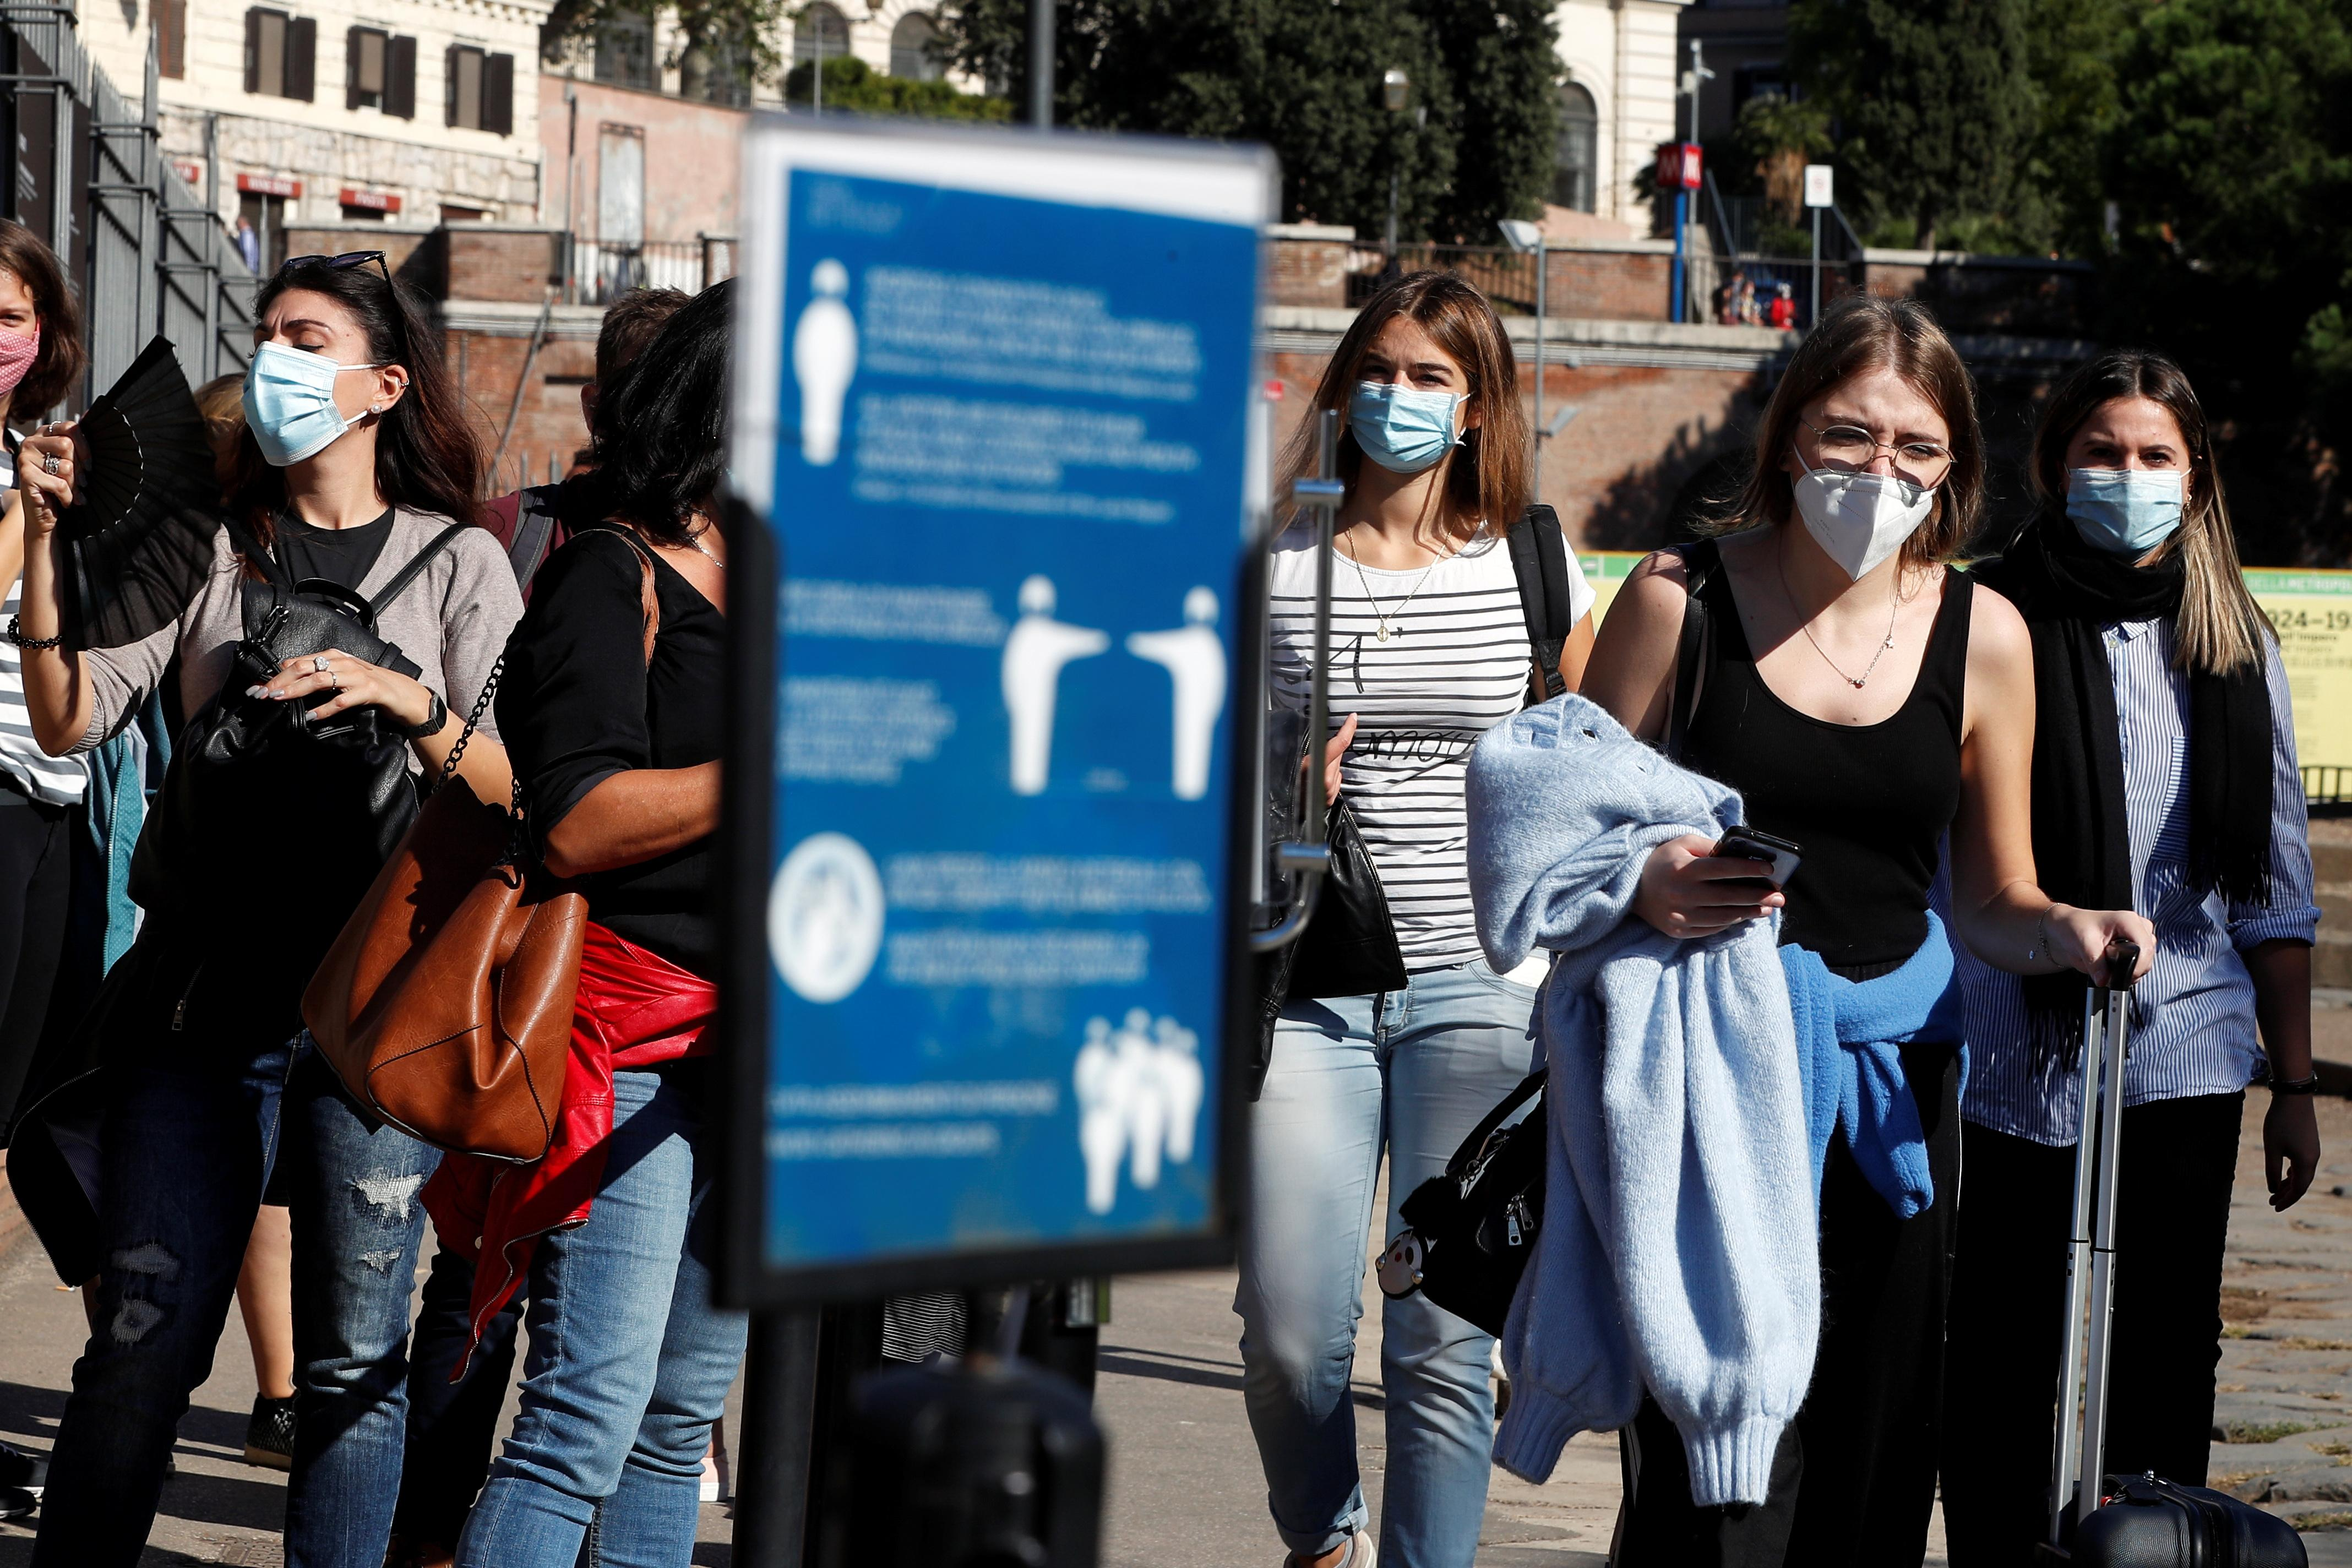 Europe daily coronavirus cases double in 10 days, reports 200,000 daily cases for the first time